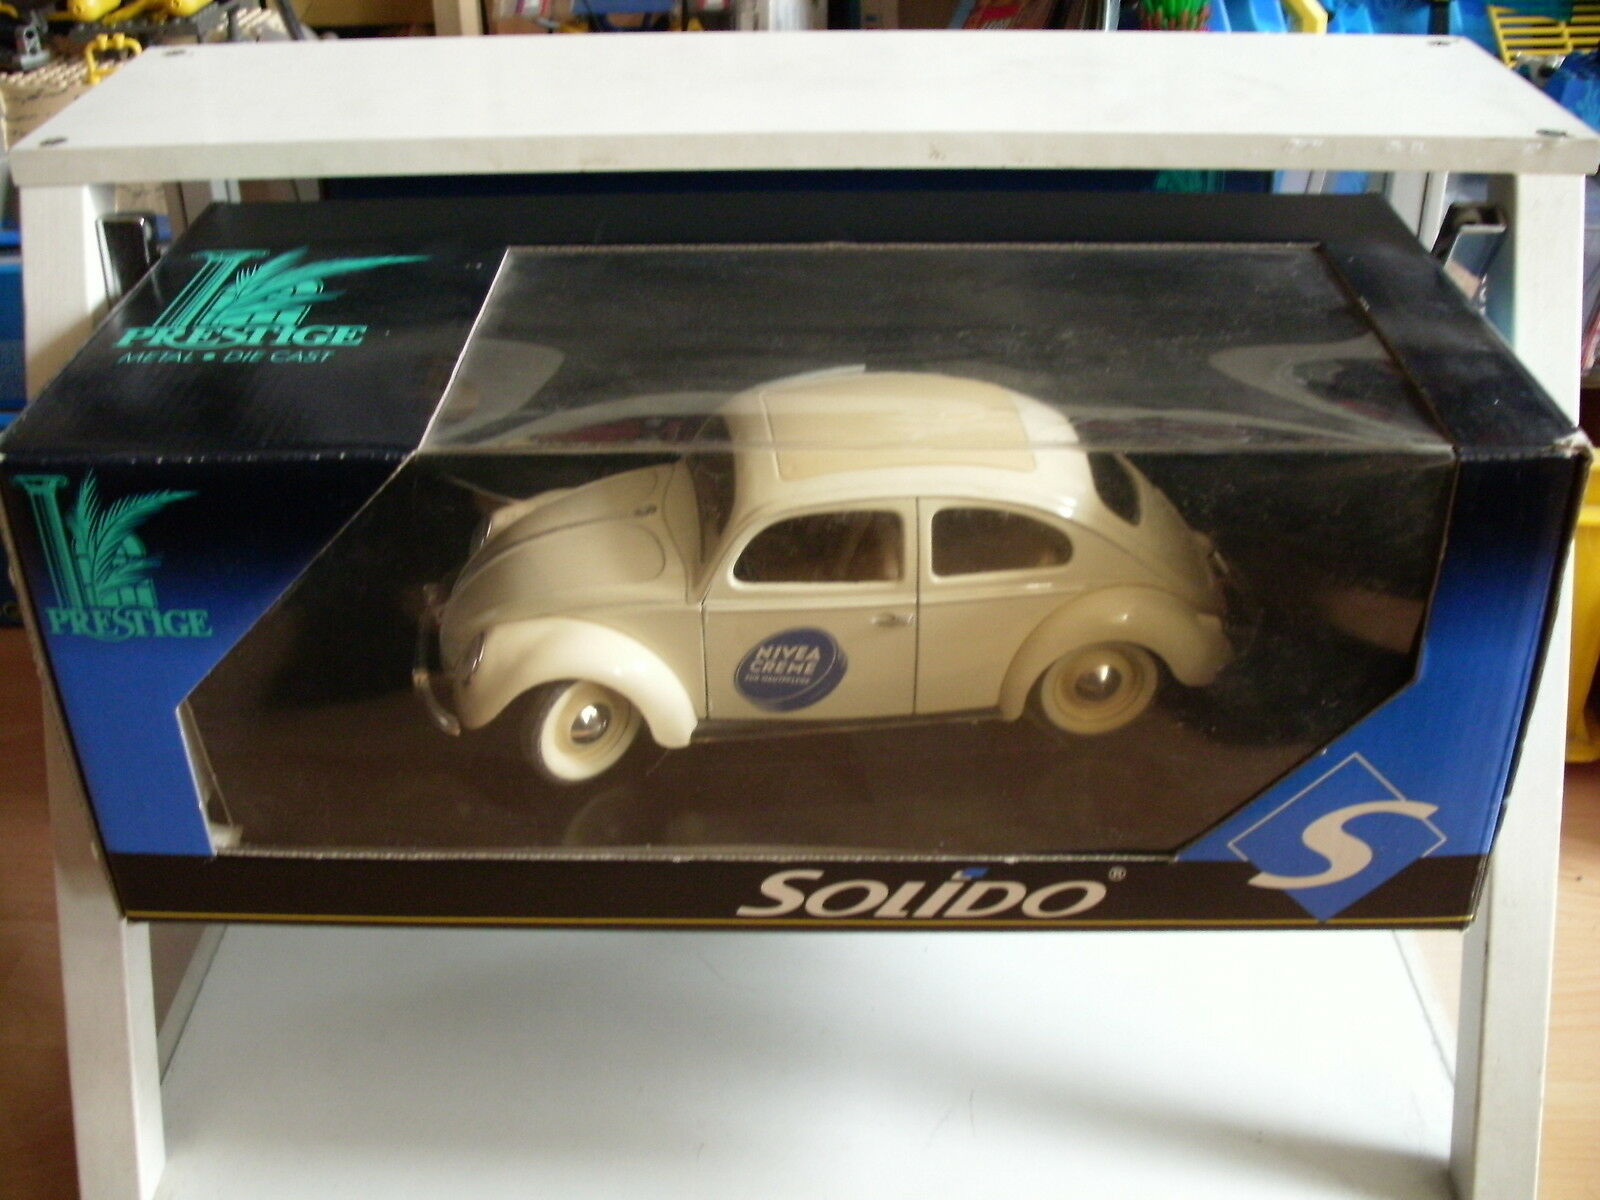 Solido Prestige VW Volkswagen Beetle Nivea Creme in White on 1:18 Box